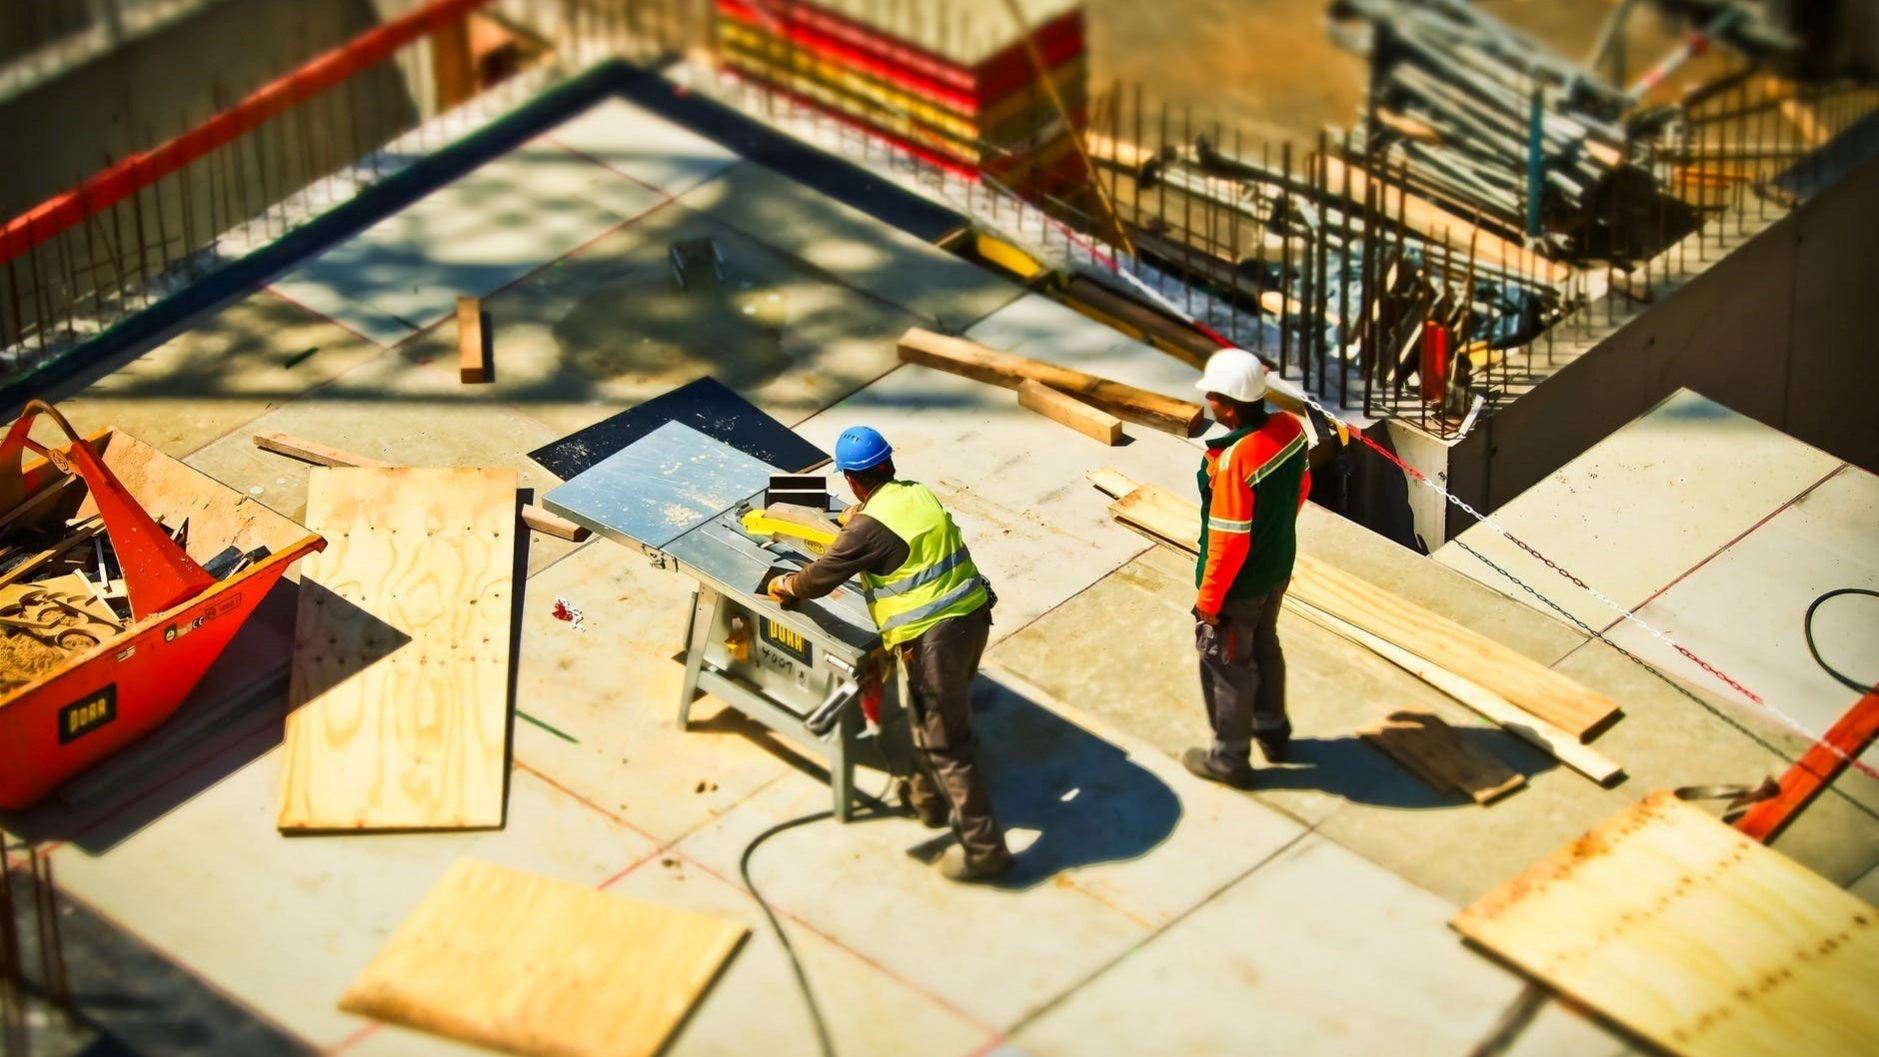 2 men working on a construction site